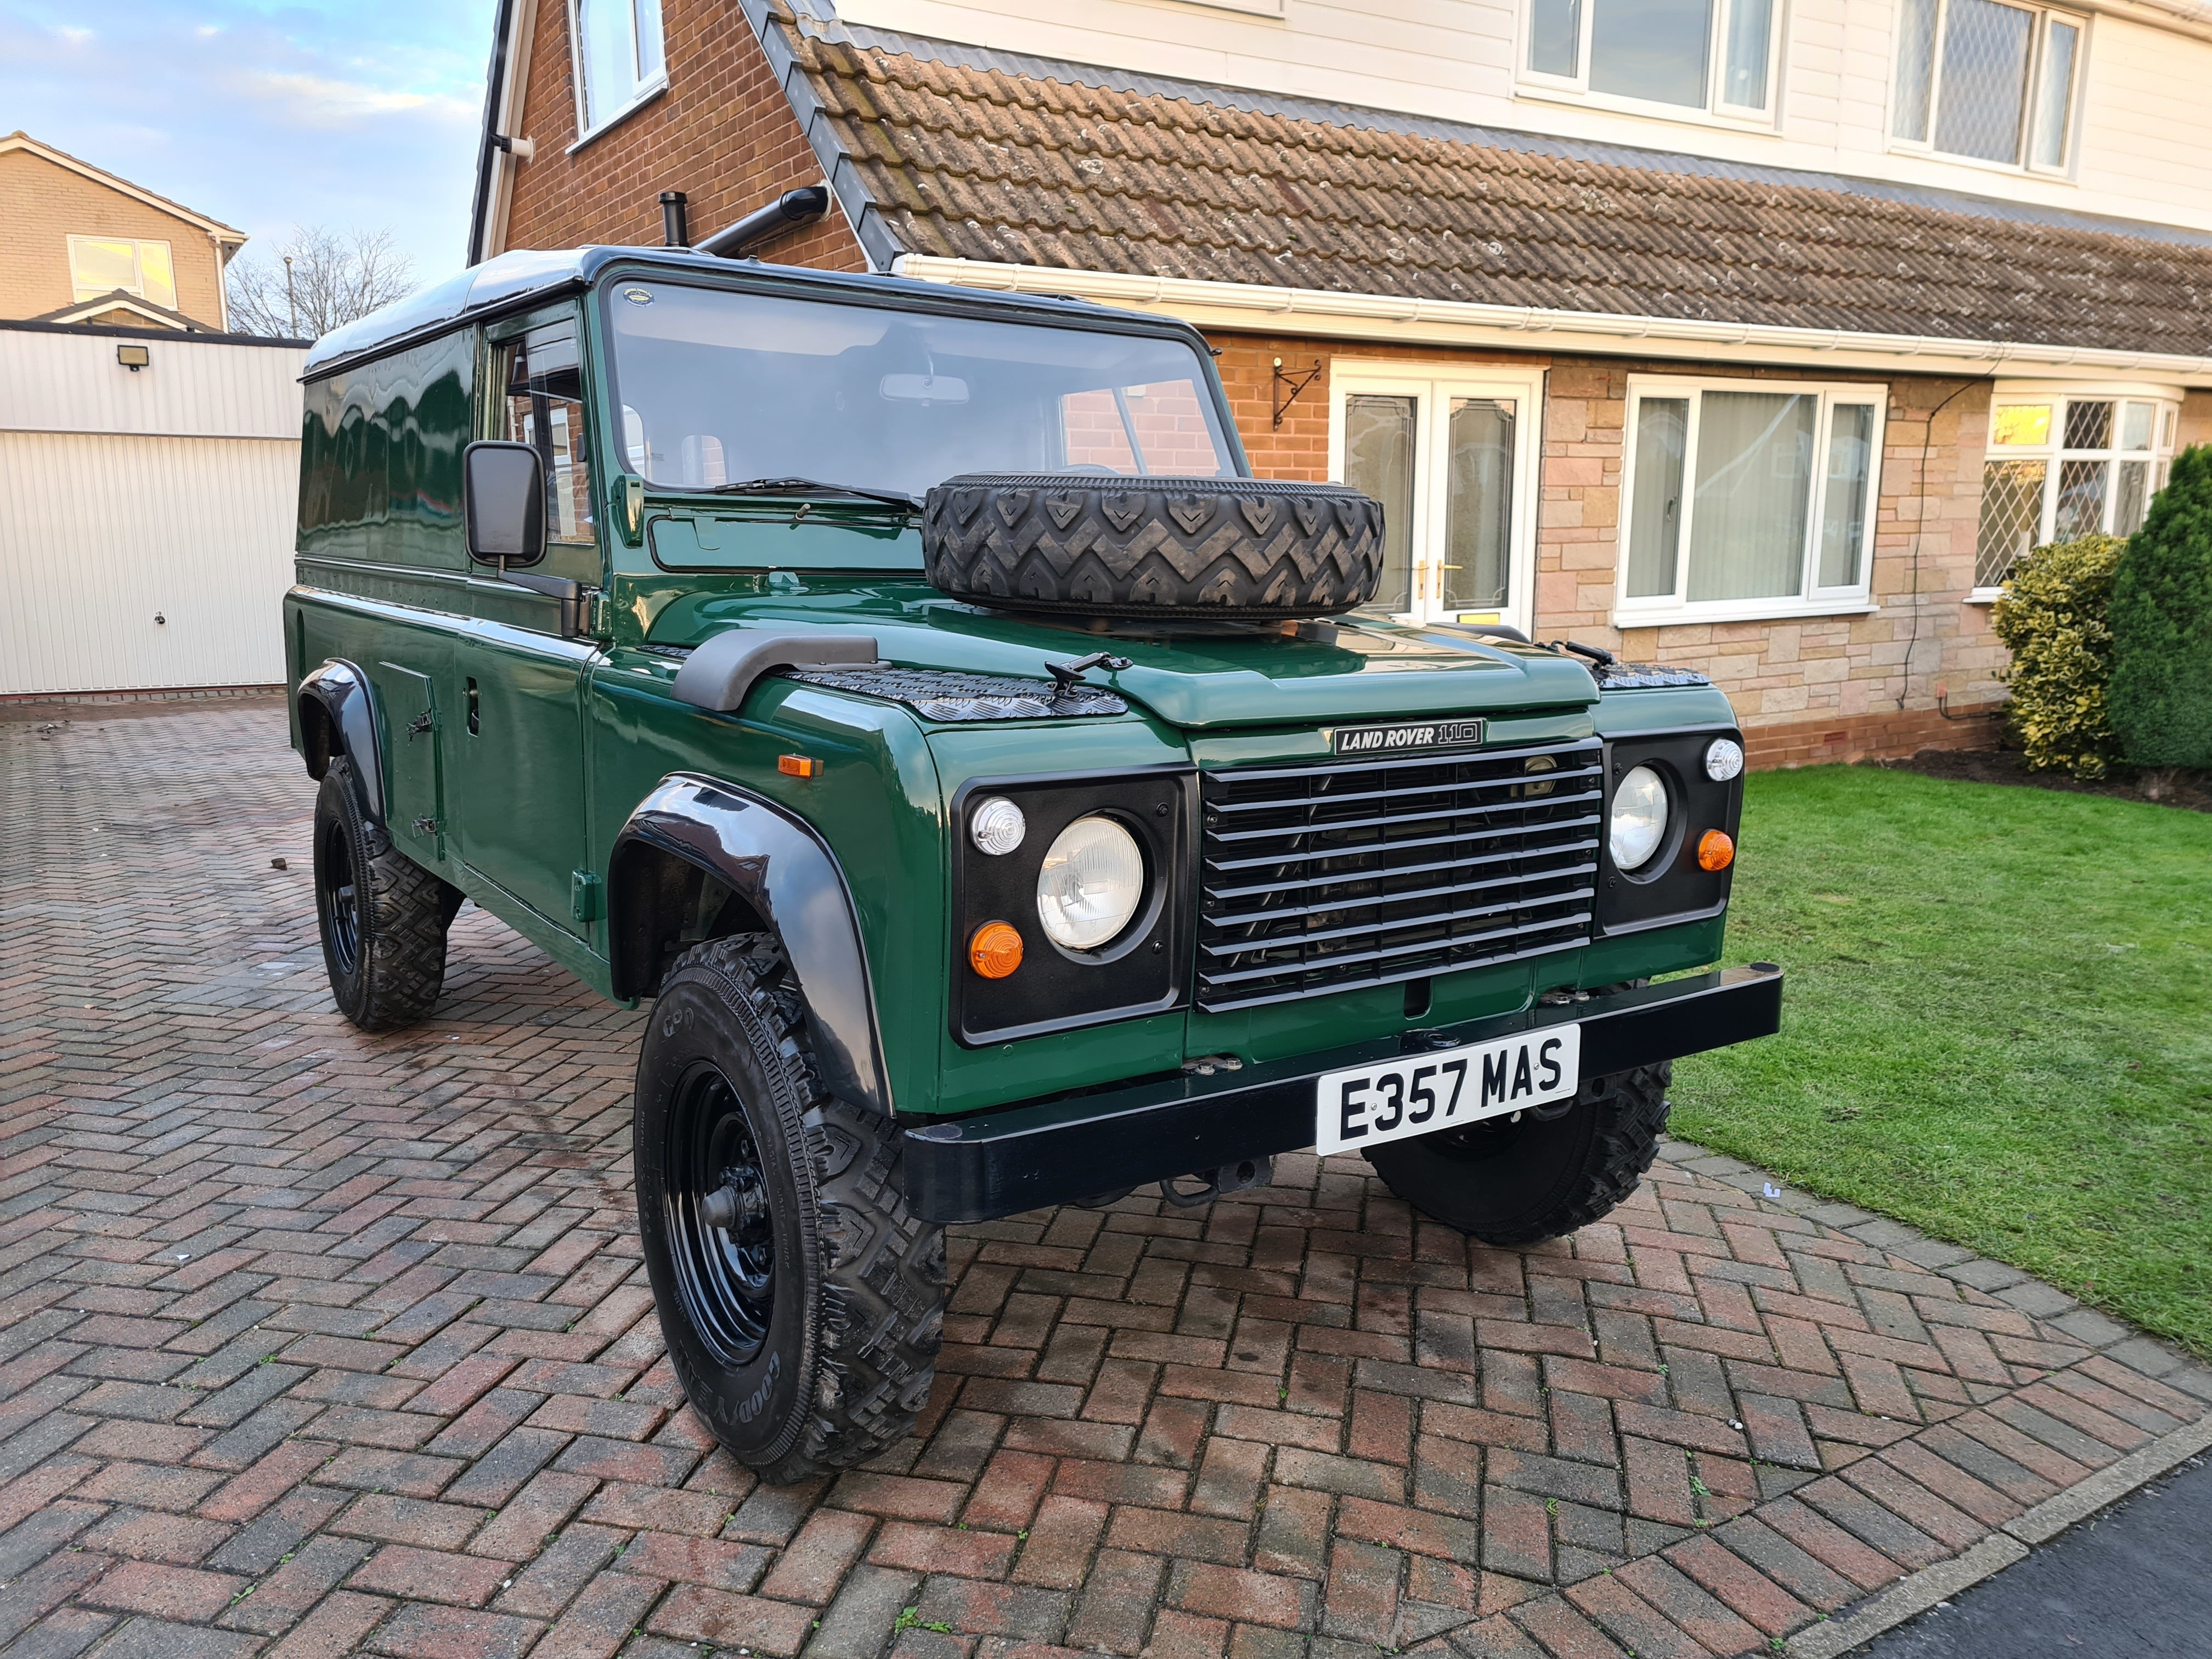 Land Rover 110 2.5n/a LHD USA EXPORTABLE IDEAL CAMPER